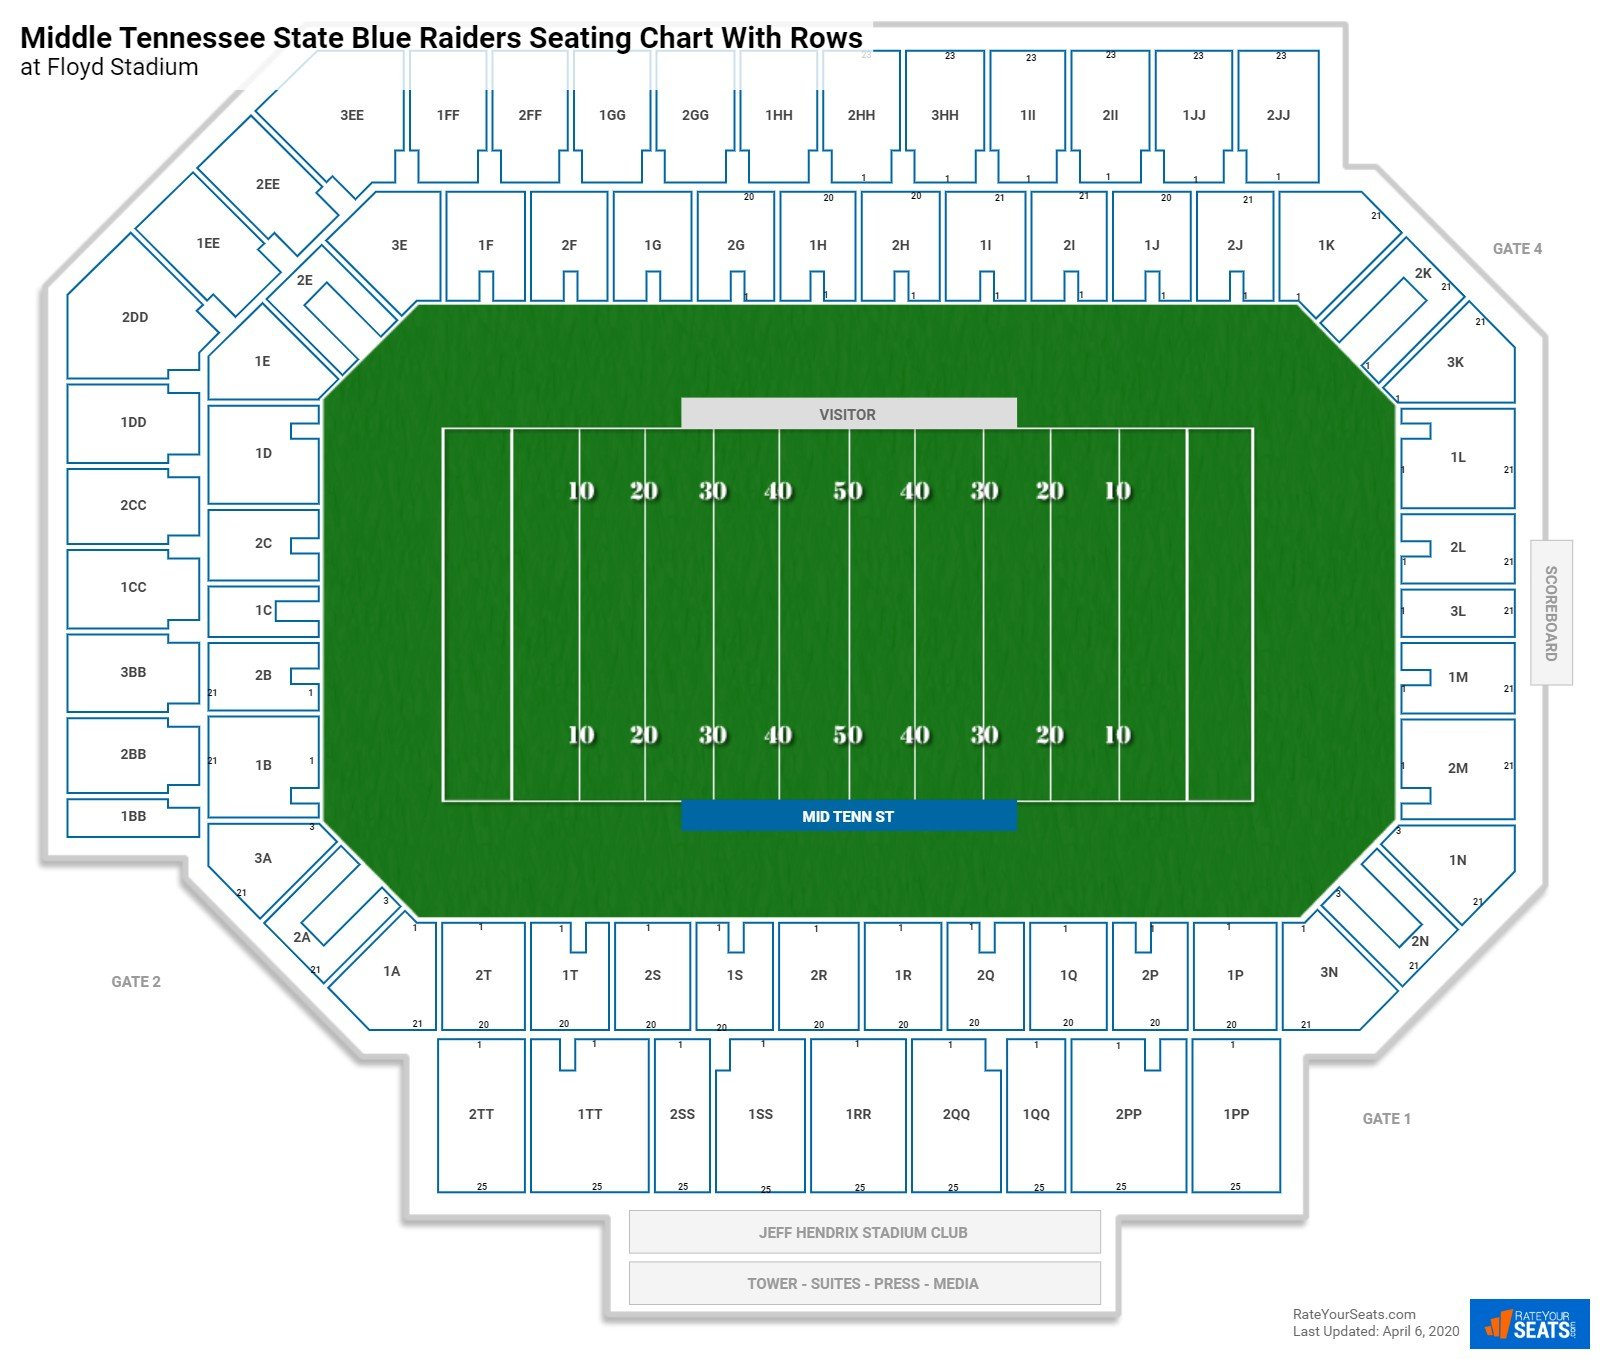 Floyd Stadium seating chart with rows